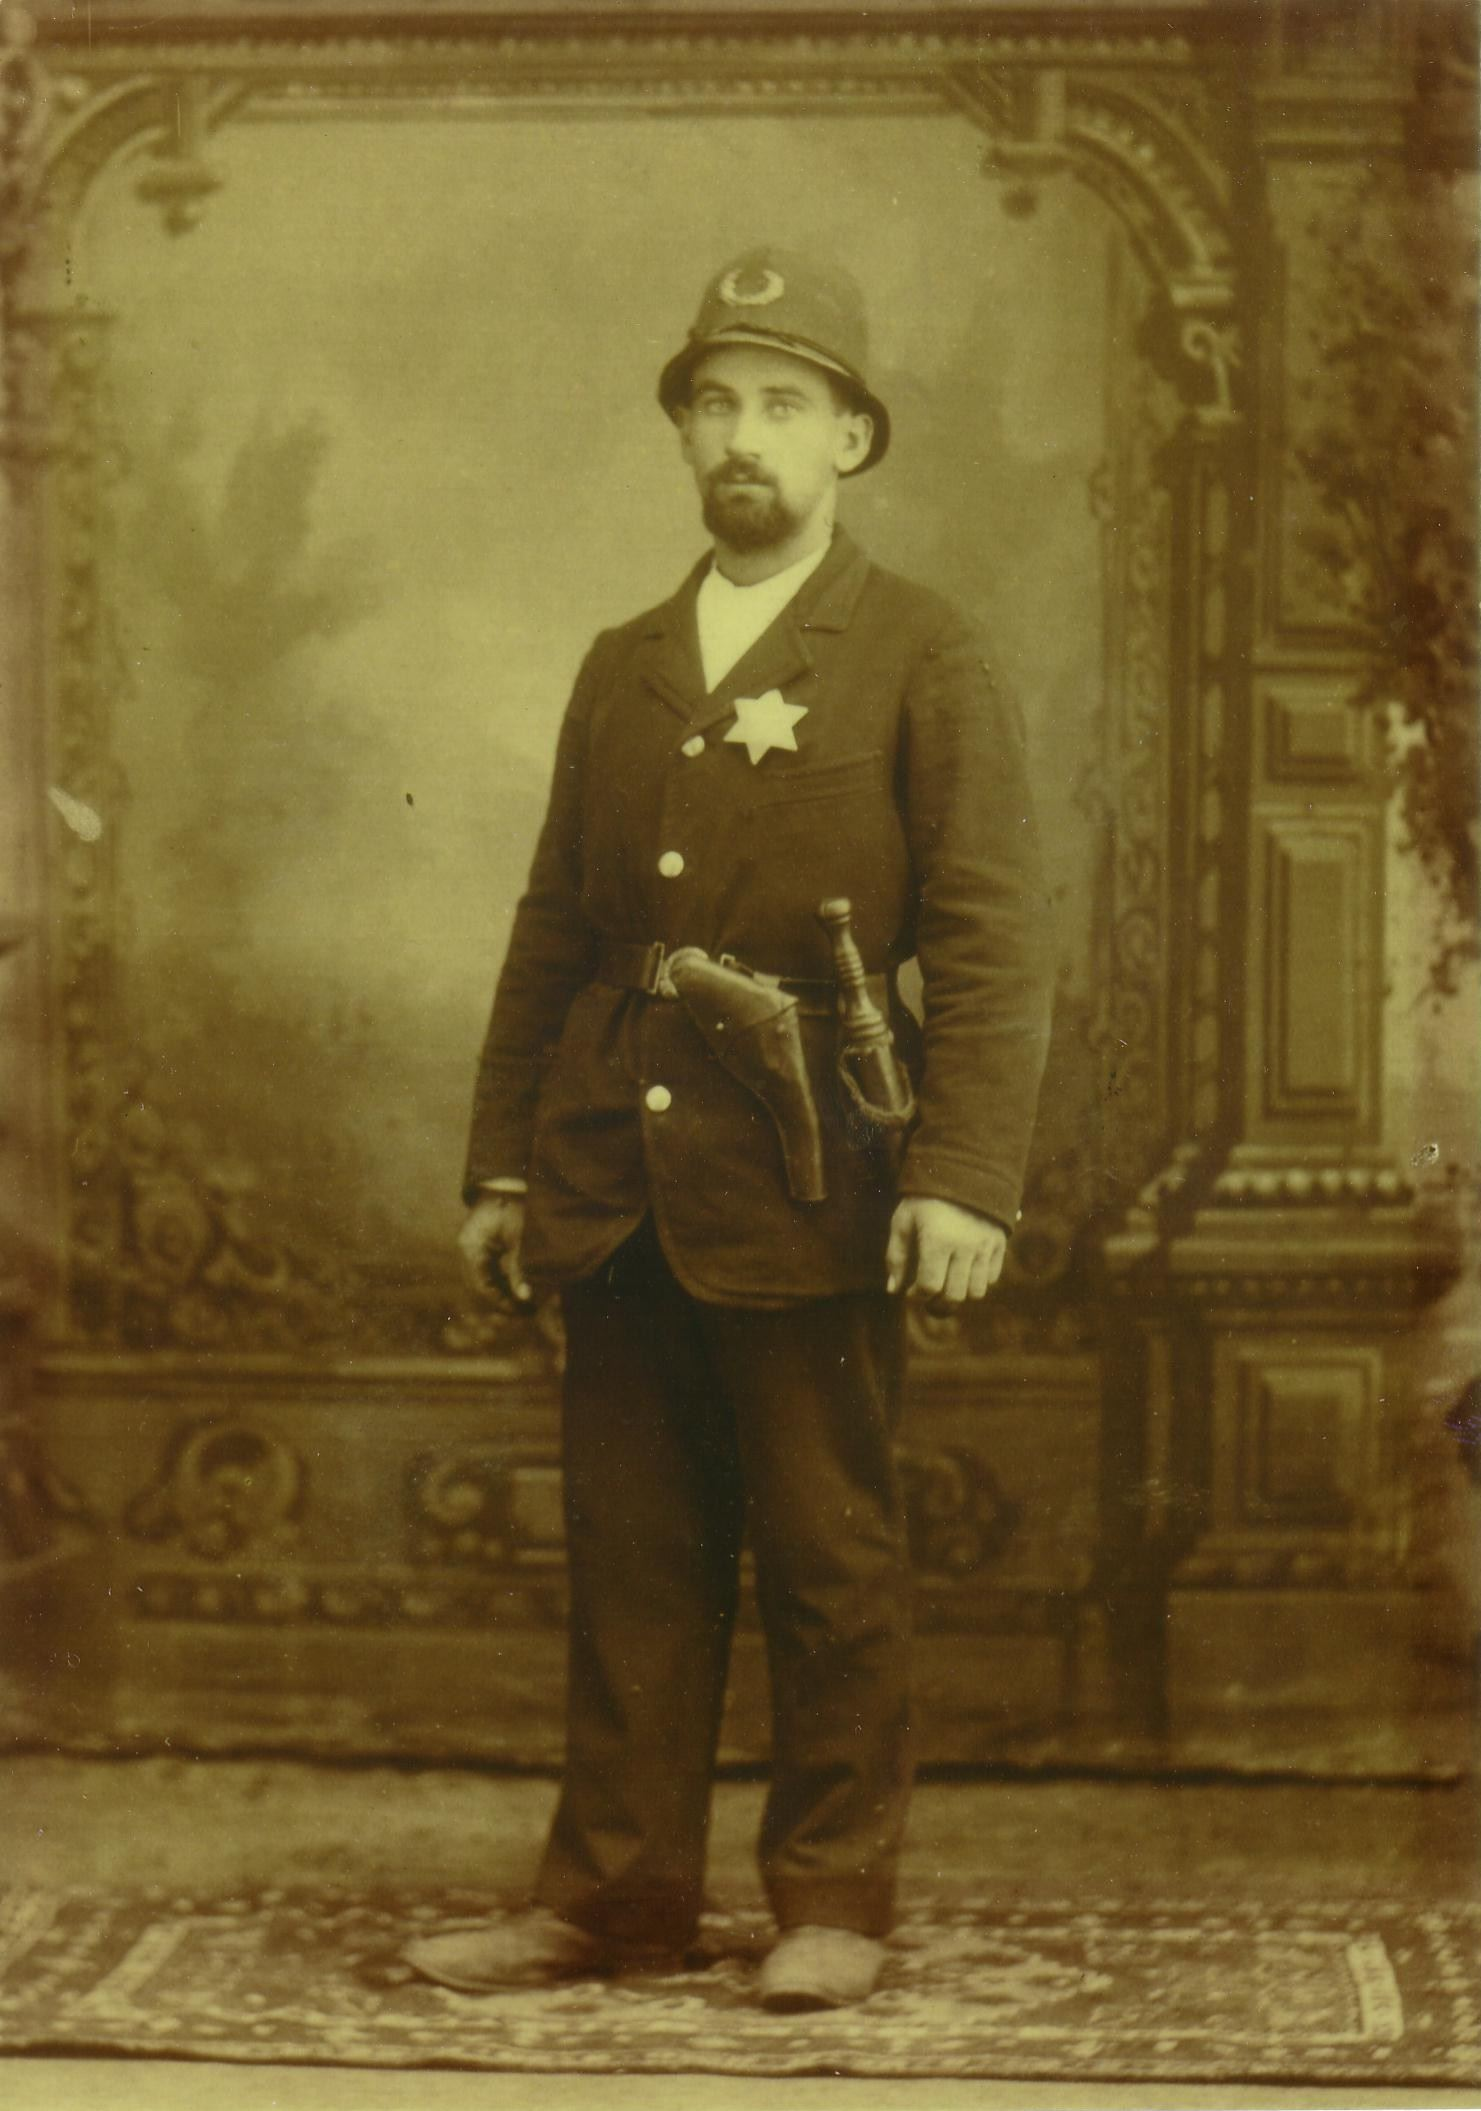 Police Officer in 1897